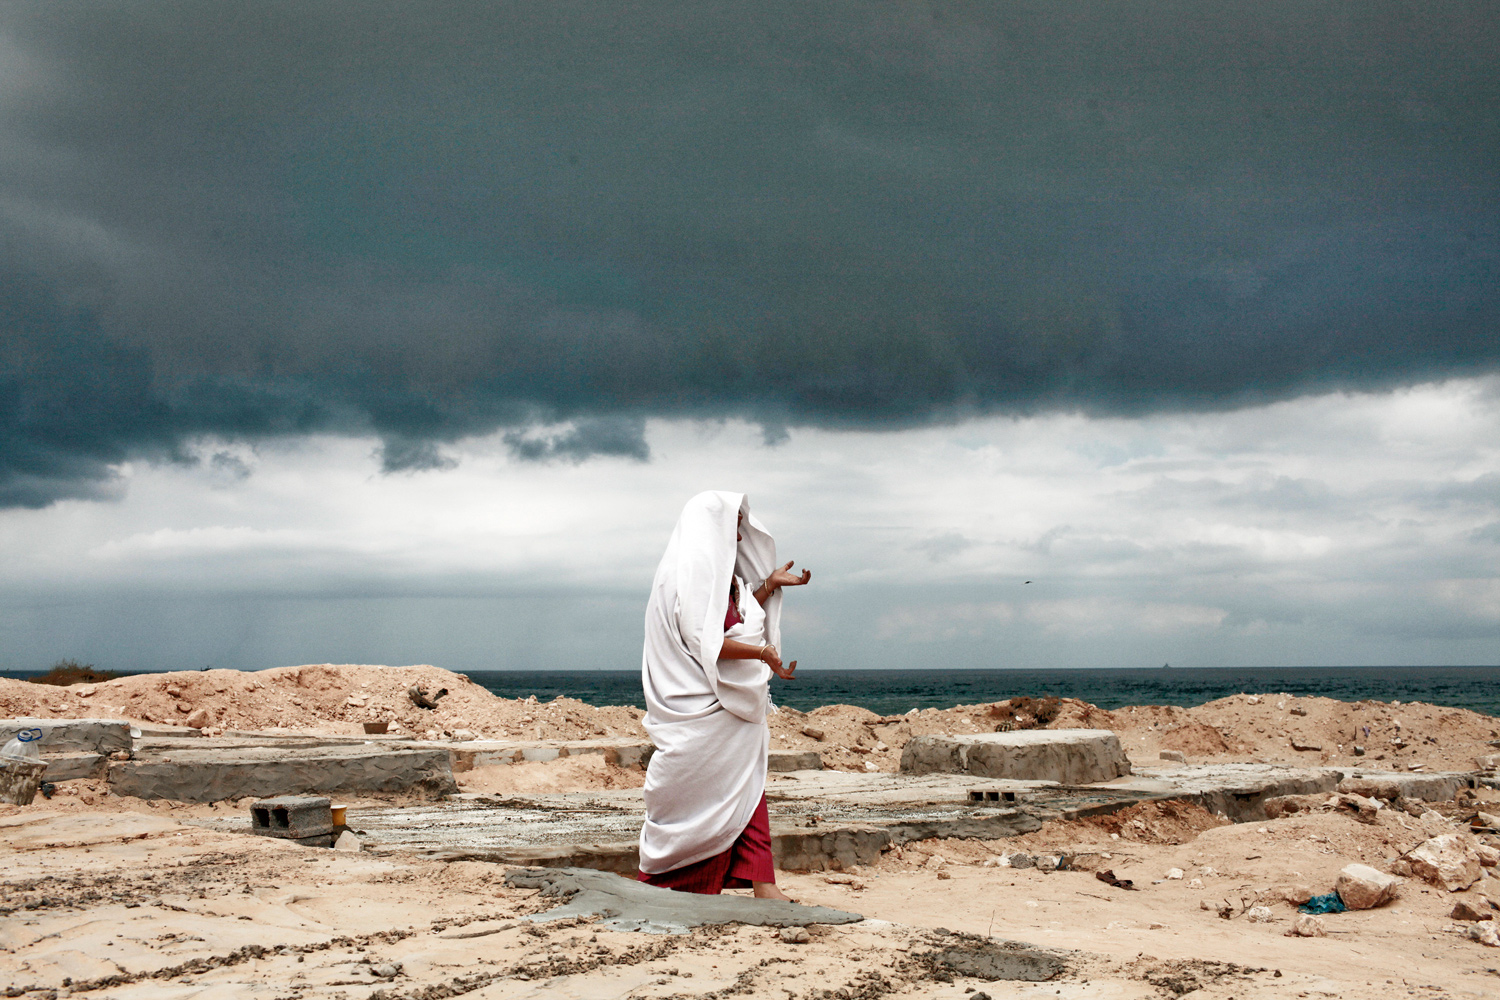 September 9, 2011. Under an ominous sky, Eyadea Elspaie visits the grave site of his son, Tareq Elspaie, who was killed by Gaddafi loyalists in August.